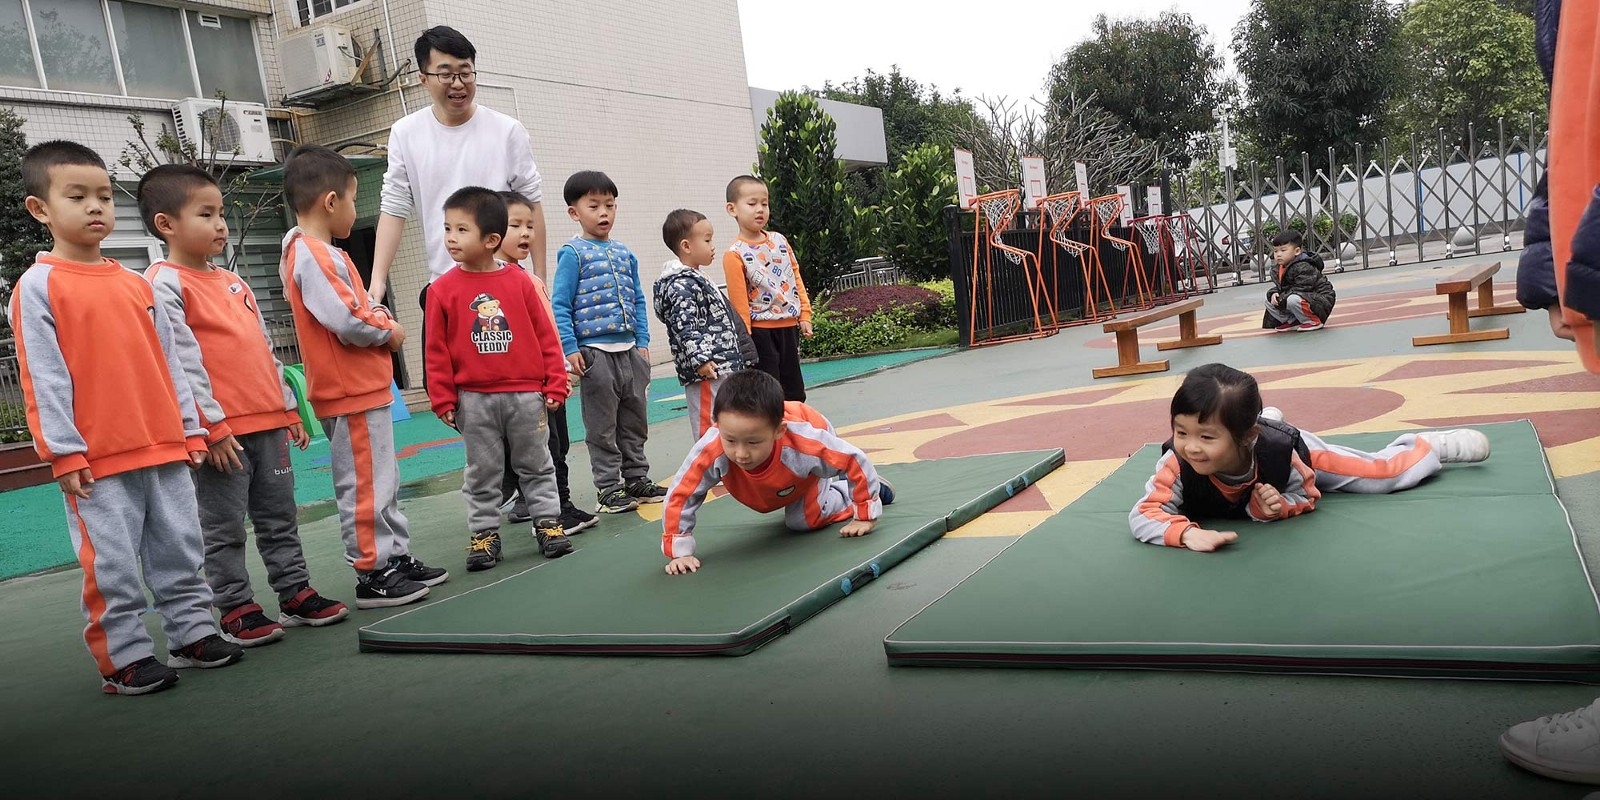 The Stigma Of Autism When All Eyes Are >> The Inclusive School Fighting China S Stigma Against Autism